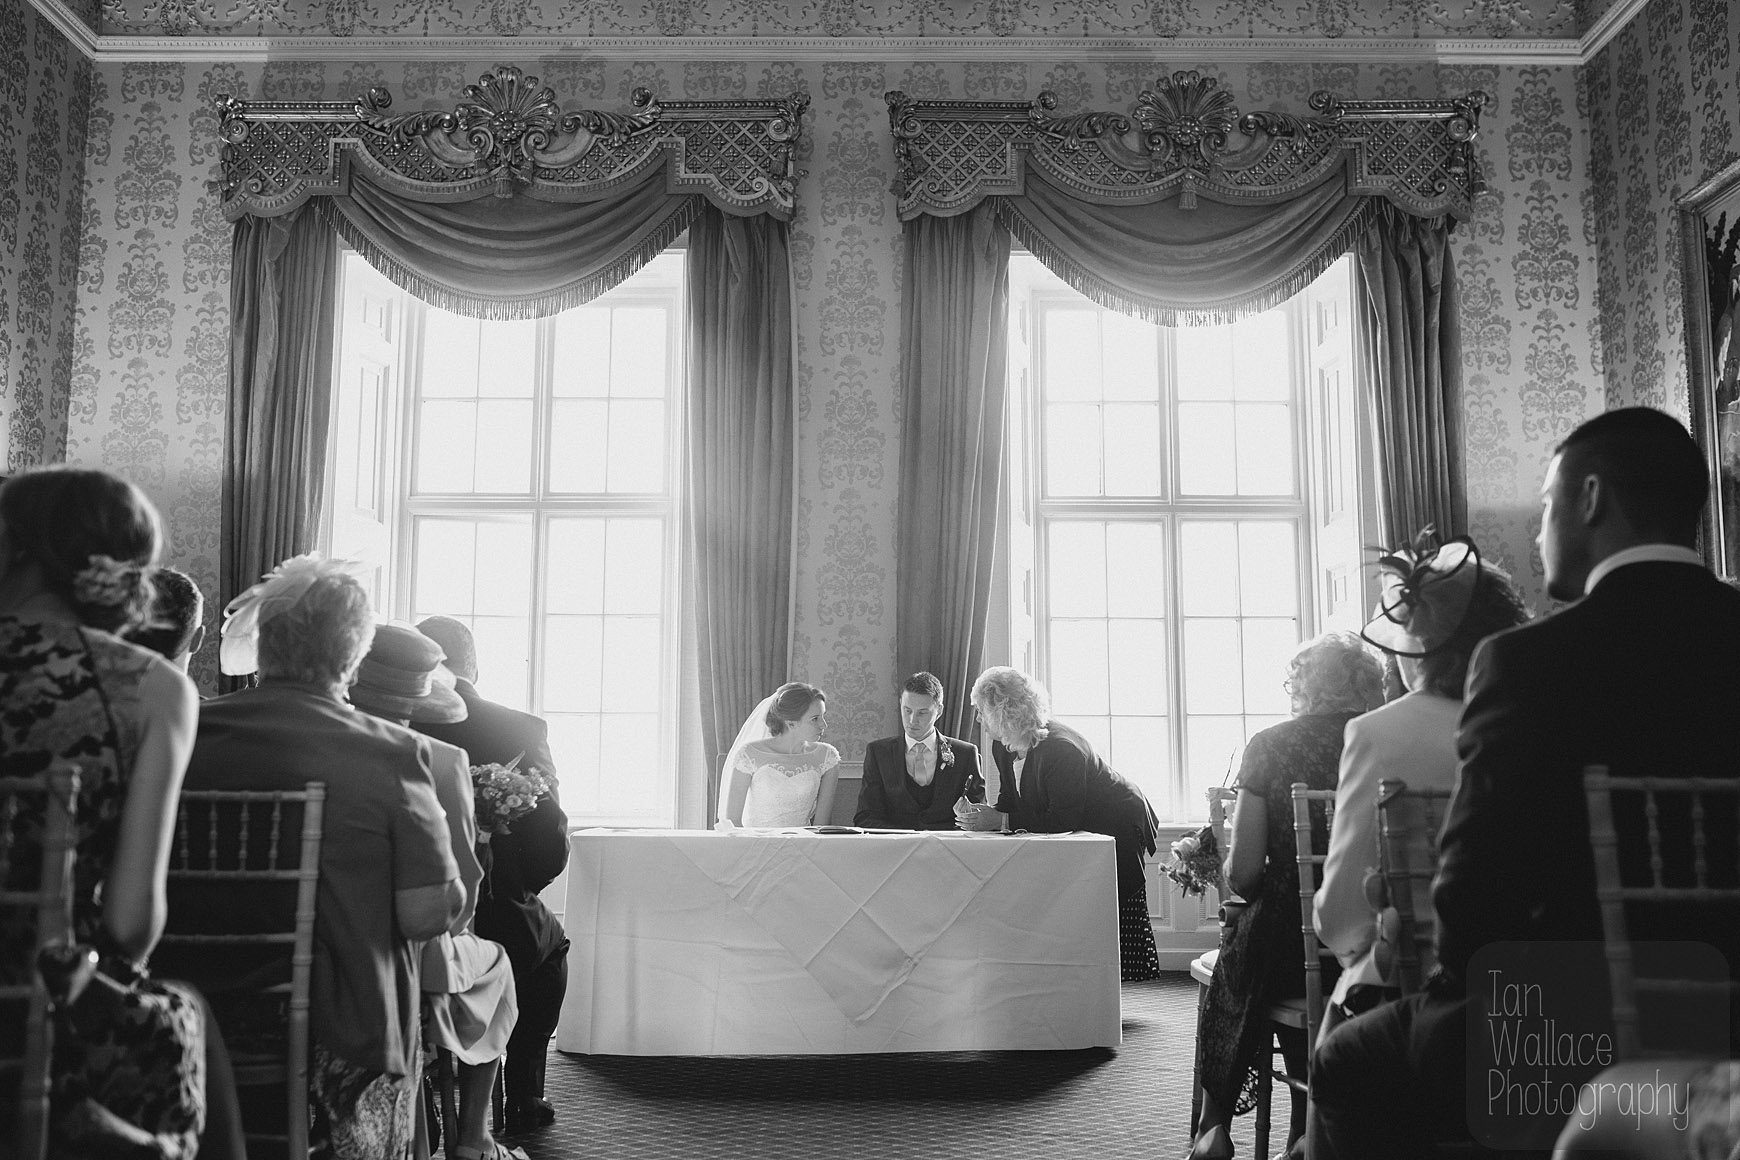 The registrar talking to the happily married couple as they sign the register.